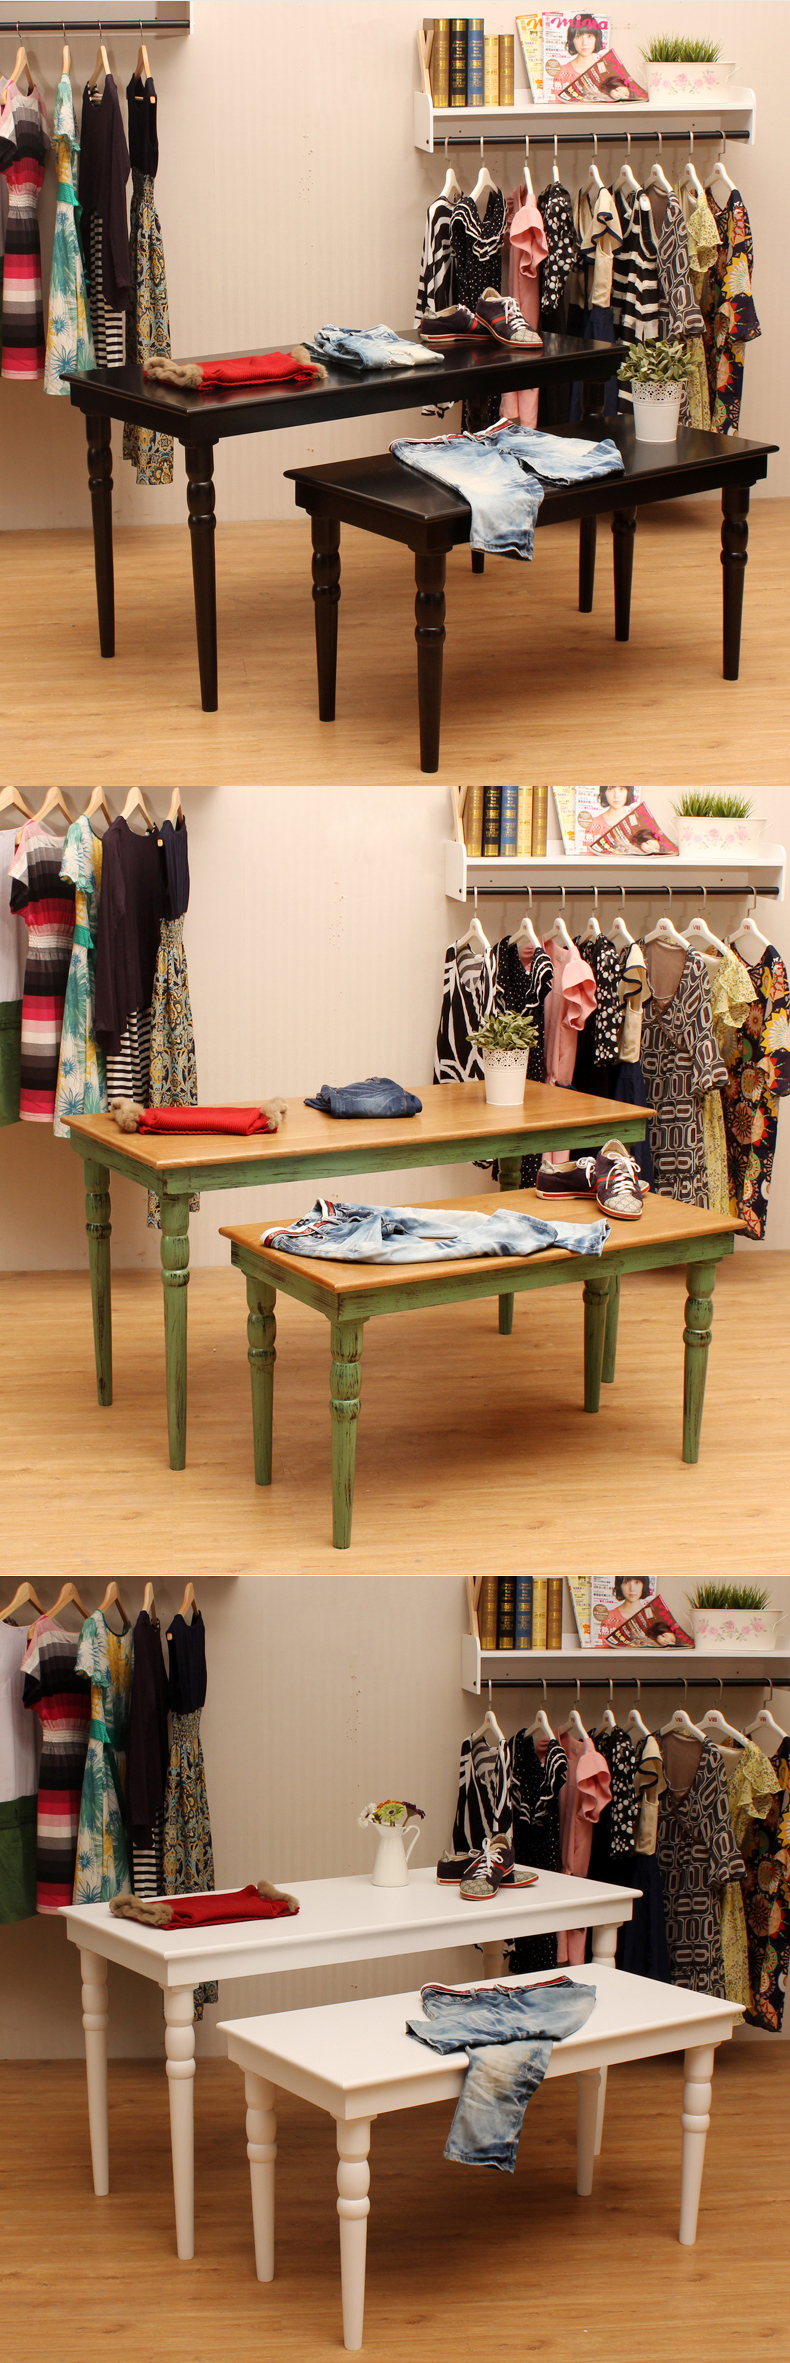 Retail Store Display Table